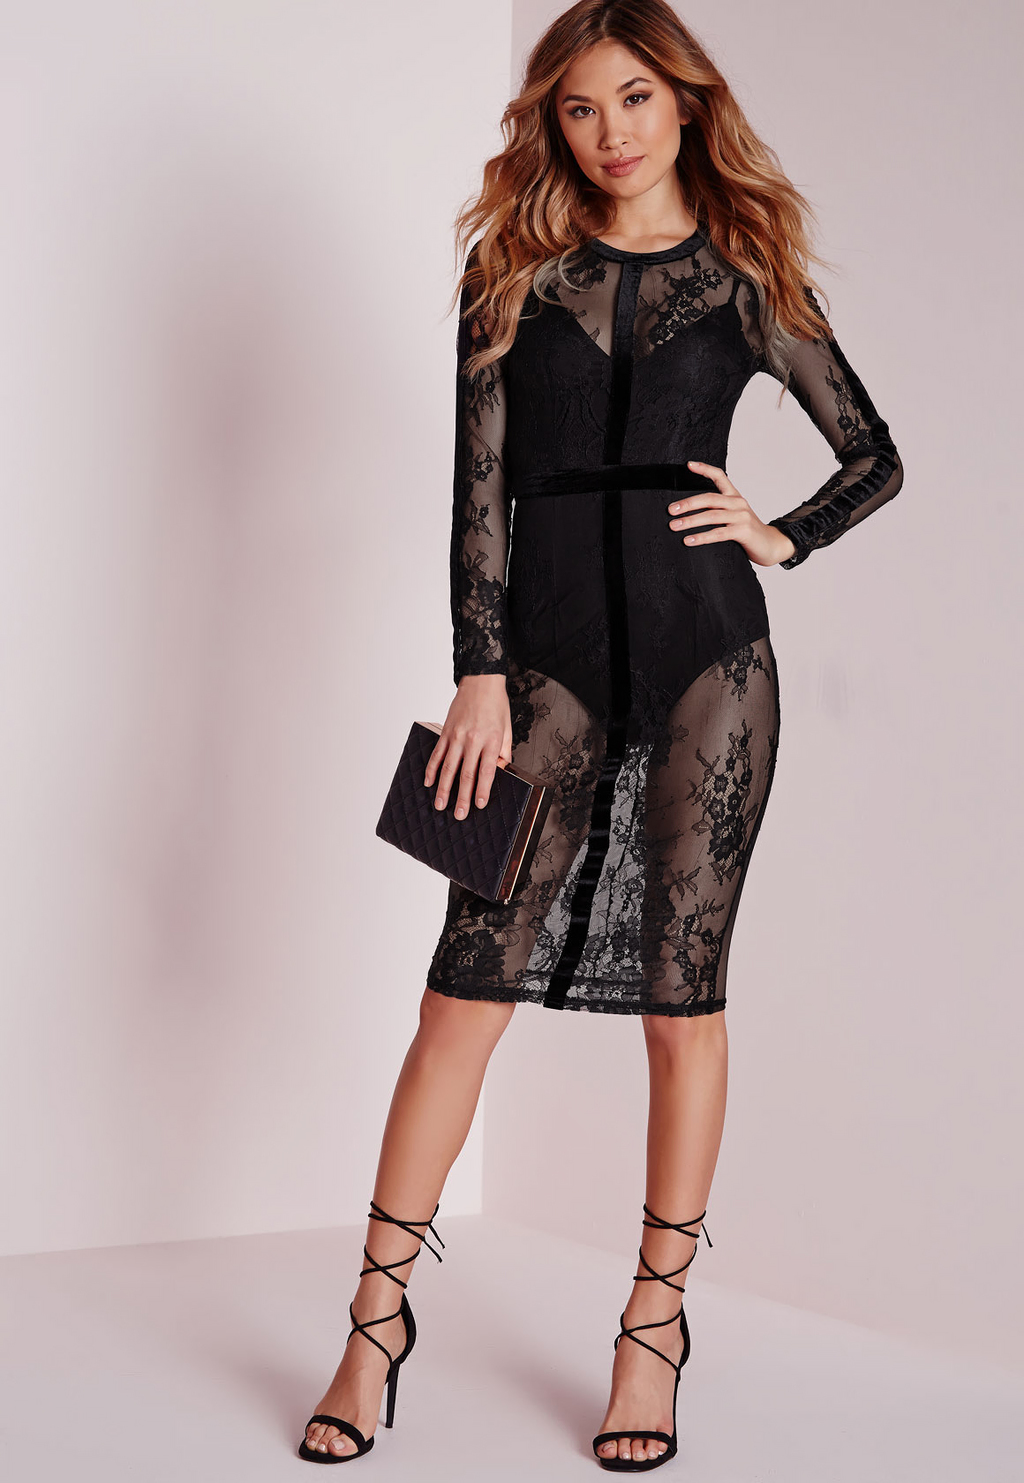 Lace Velvet Binding Midi Dress Black, Black - style: shift; neckline: round neck; bust detail: sheer at bust; predominant colour: black; occasions: evening; length: on the knee; fit: body skimming; fibres: polyester/polyamide - stretch; back detail: sheer fabric at back; sleeve length: long sleeve; sleeve style: standard; texture group: lace; pattern type: fabric; pattern size: standard; pattern: patterned/print; season: a/w 2015; wardrobe: event